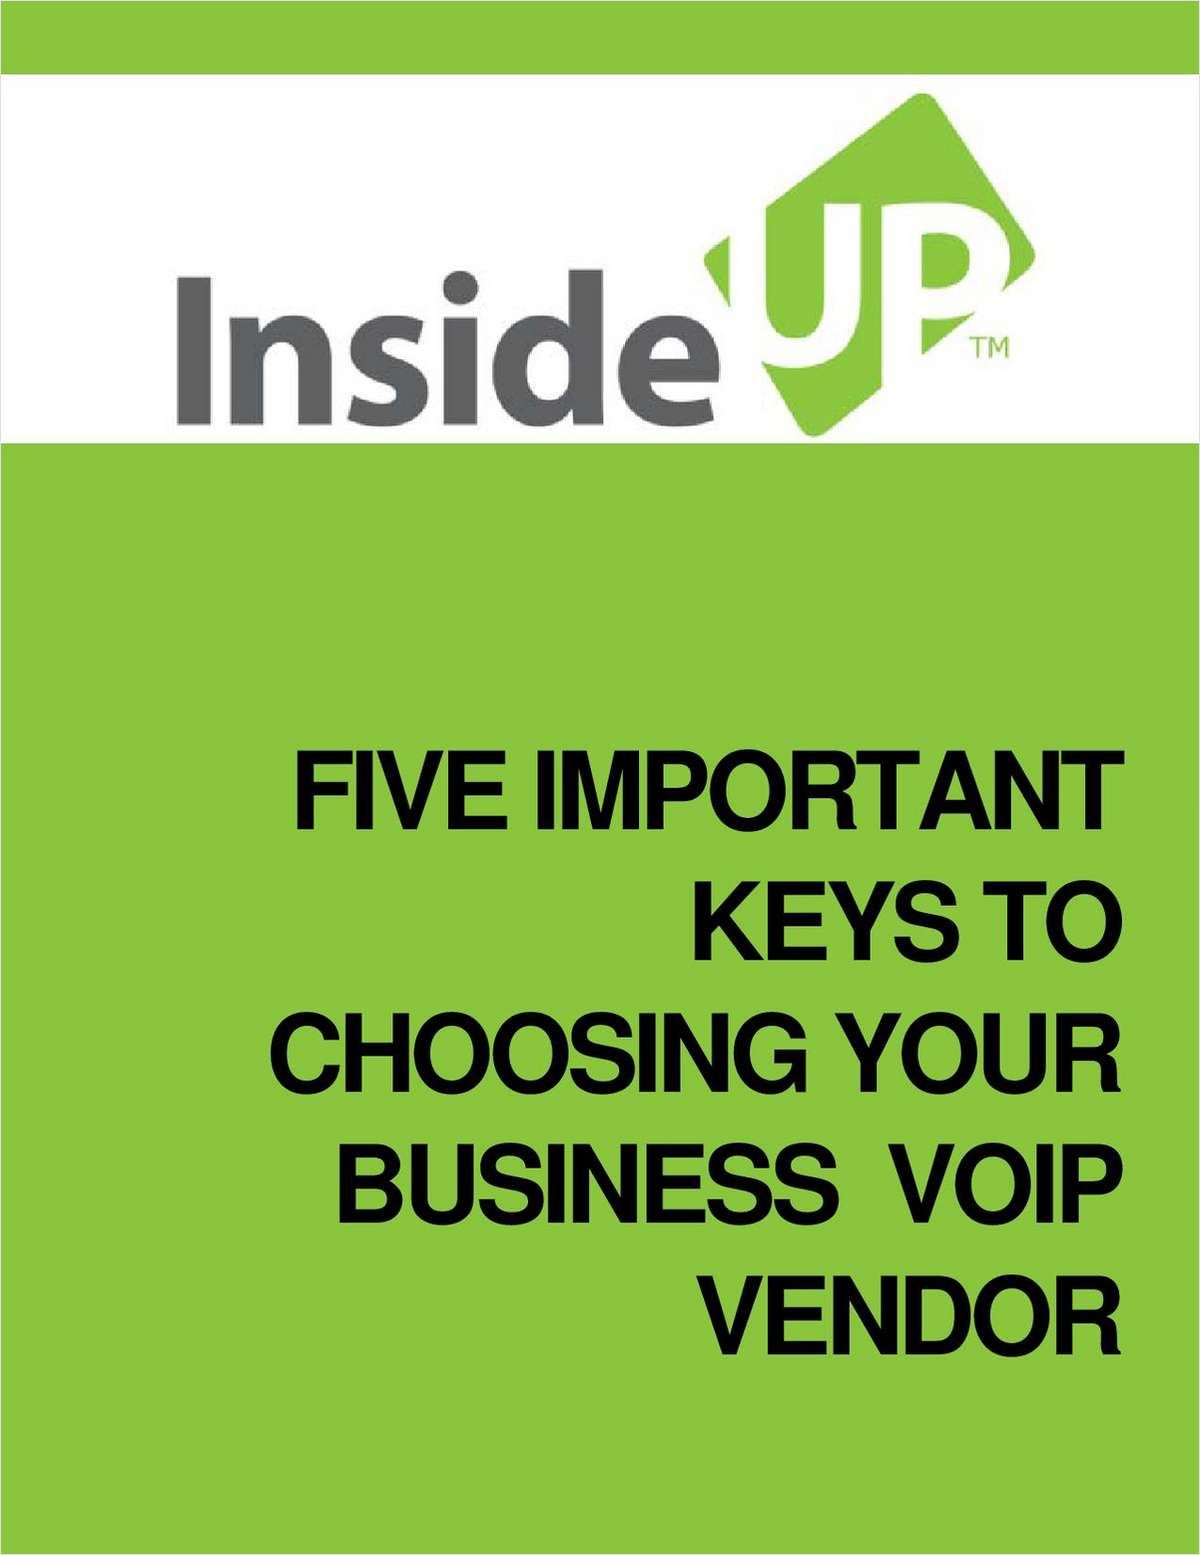 Five Important Keys To Choosing Your Business VoIP Vendor